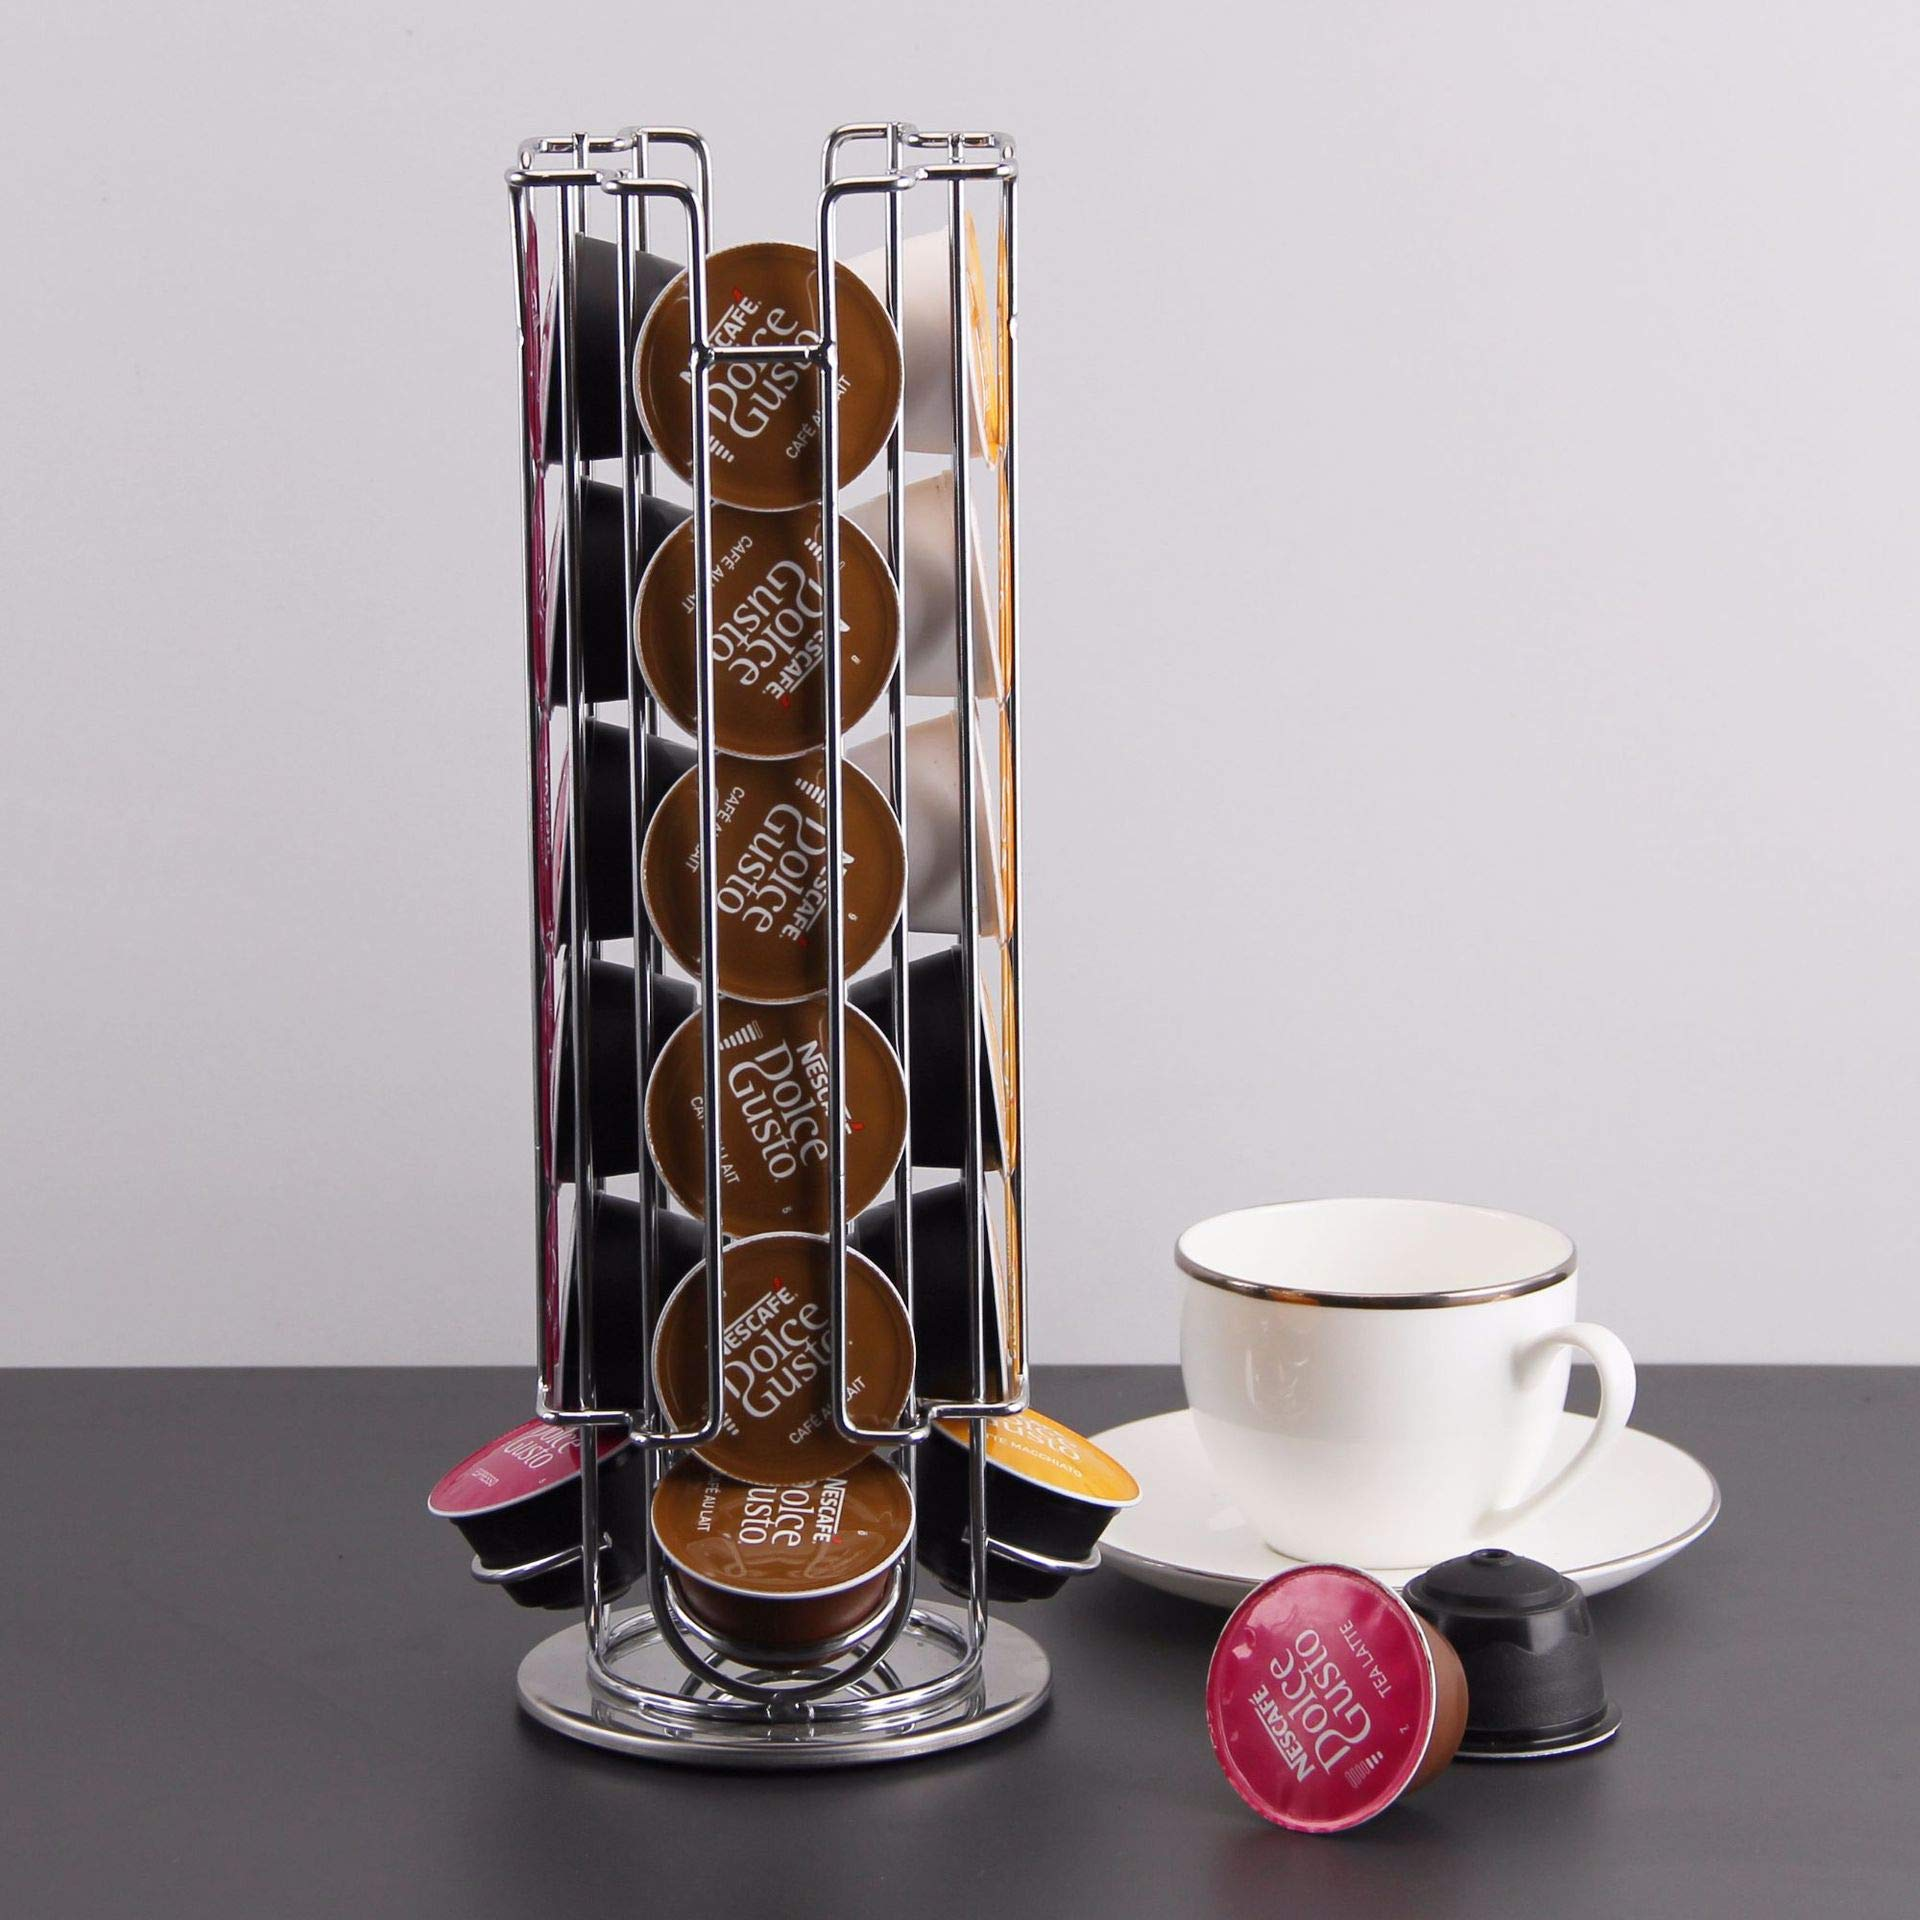 Rotating Coffee Capsule Holder For Nescafe Dolce Gusto coffee capsules,Coffee Holder and Organizer With Non-slip Base,360-degree Rotation(Chrome Silver,4.7''L X 4.7''W X 13''H)